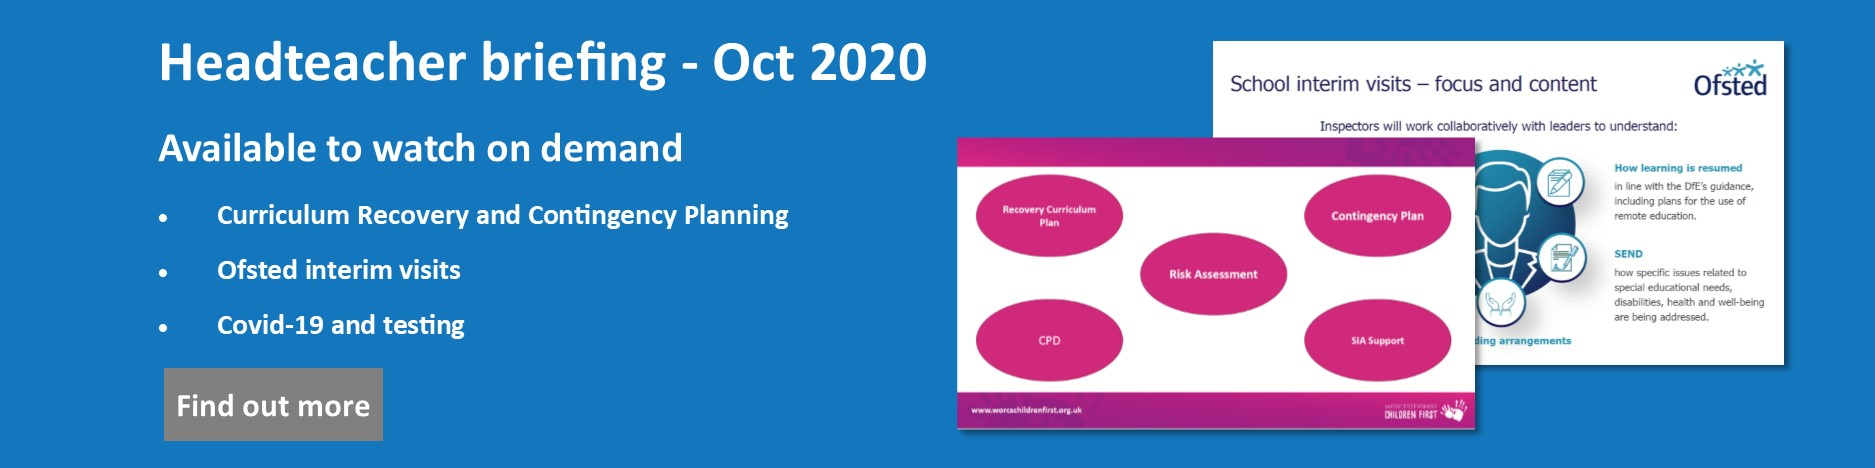 Headteacher briefing October 2020 available on demand